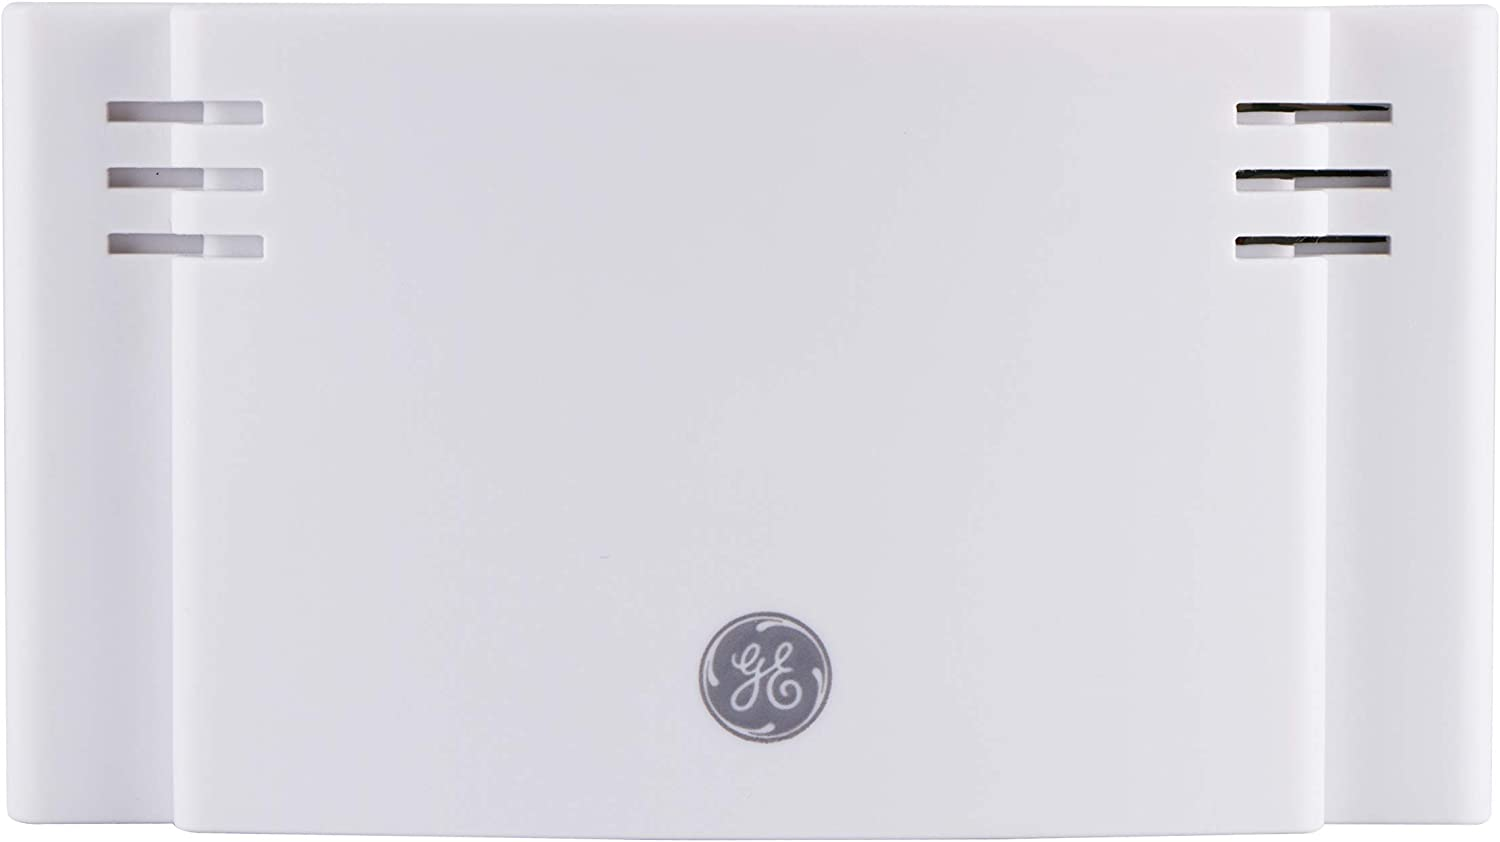 GE Wireless Doorbell Kit, 2 Melodies, 4 Volume Levels, 150 Ft. Range, Mountable, White, 35571, No Push Button, Battery-Operated Receiver